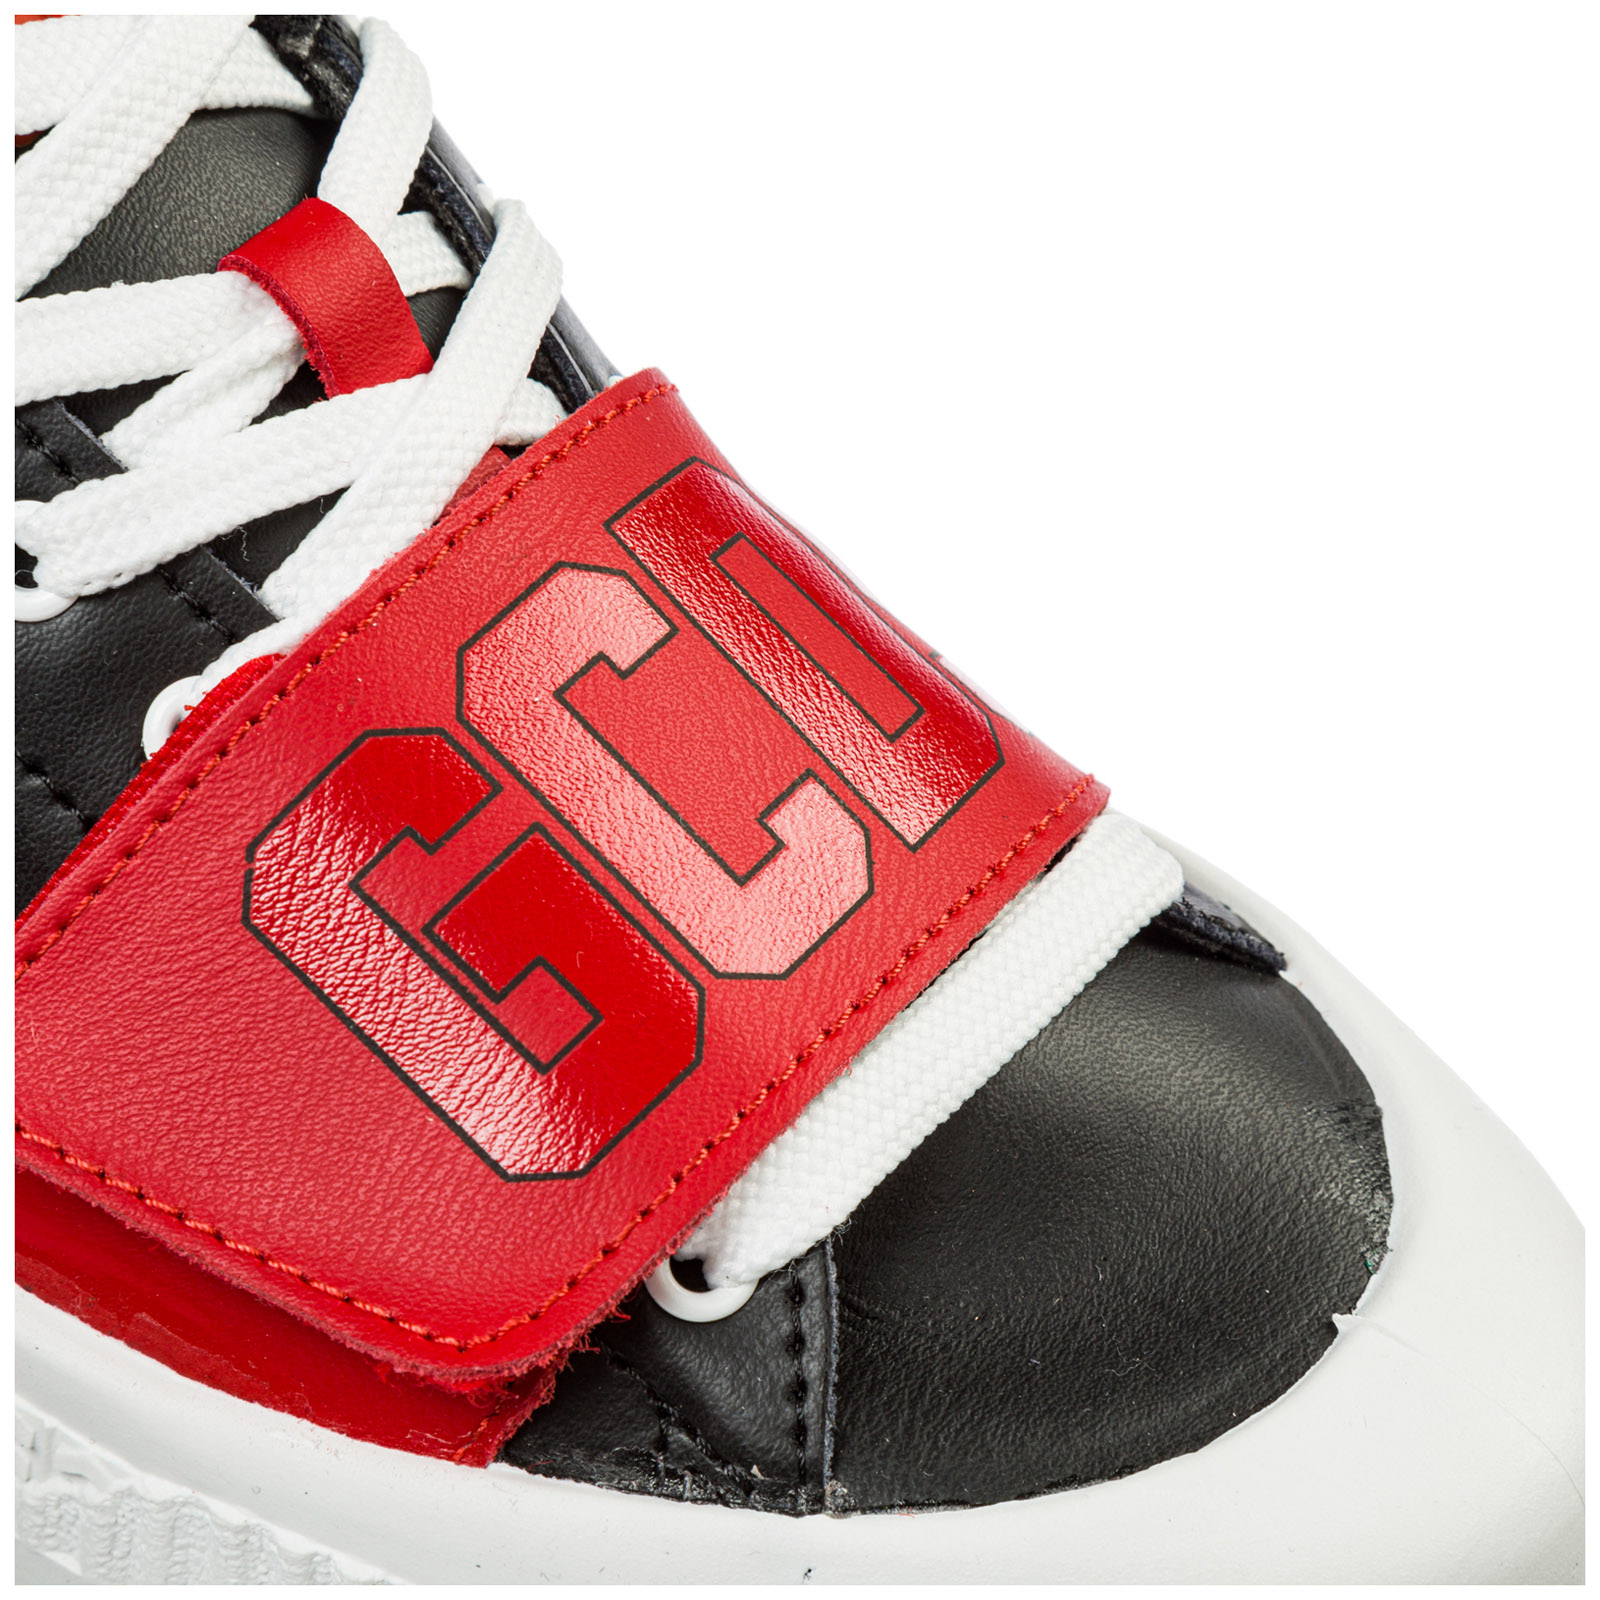 Gcds Shoes Men's shoes leather trainers sneakers